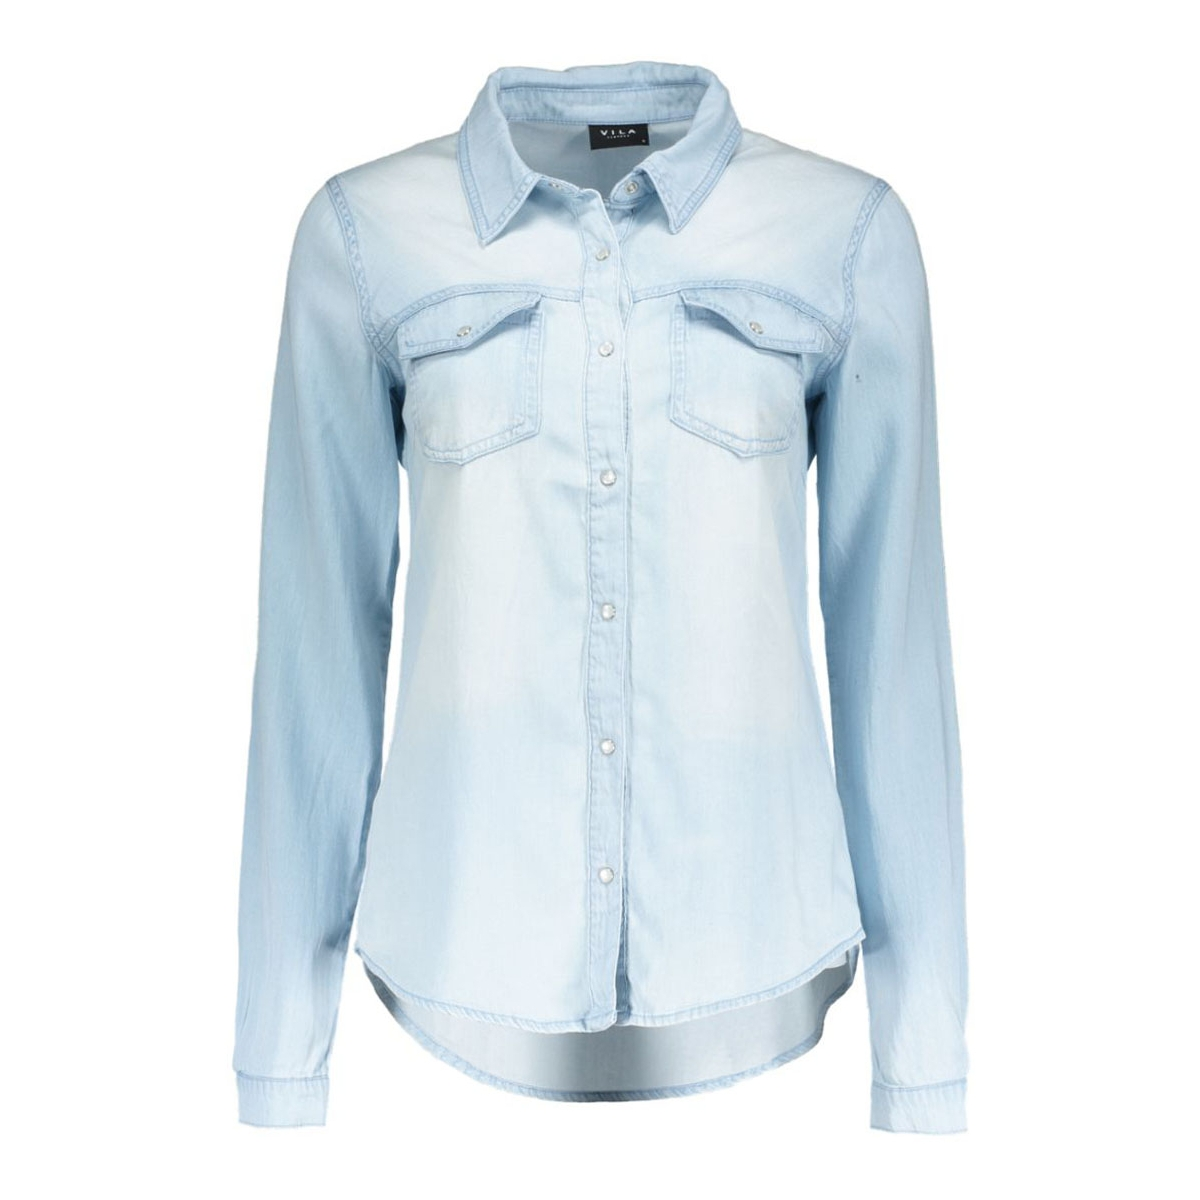 vibista denim shirt 1 14033008 vila blouse light blue denim